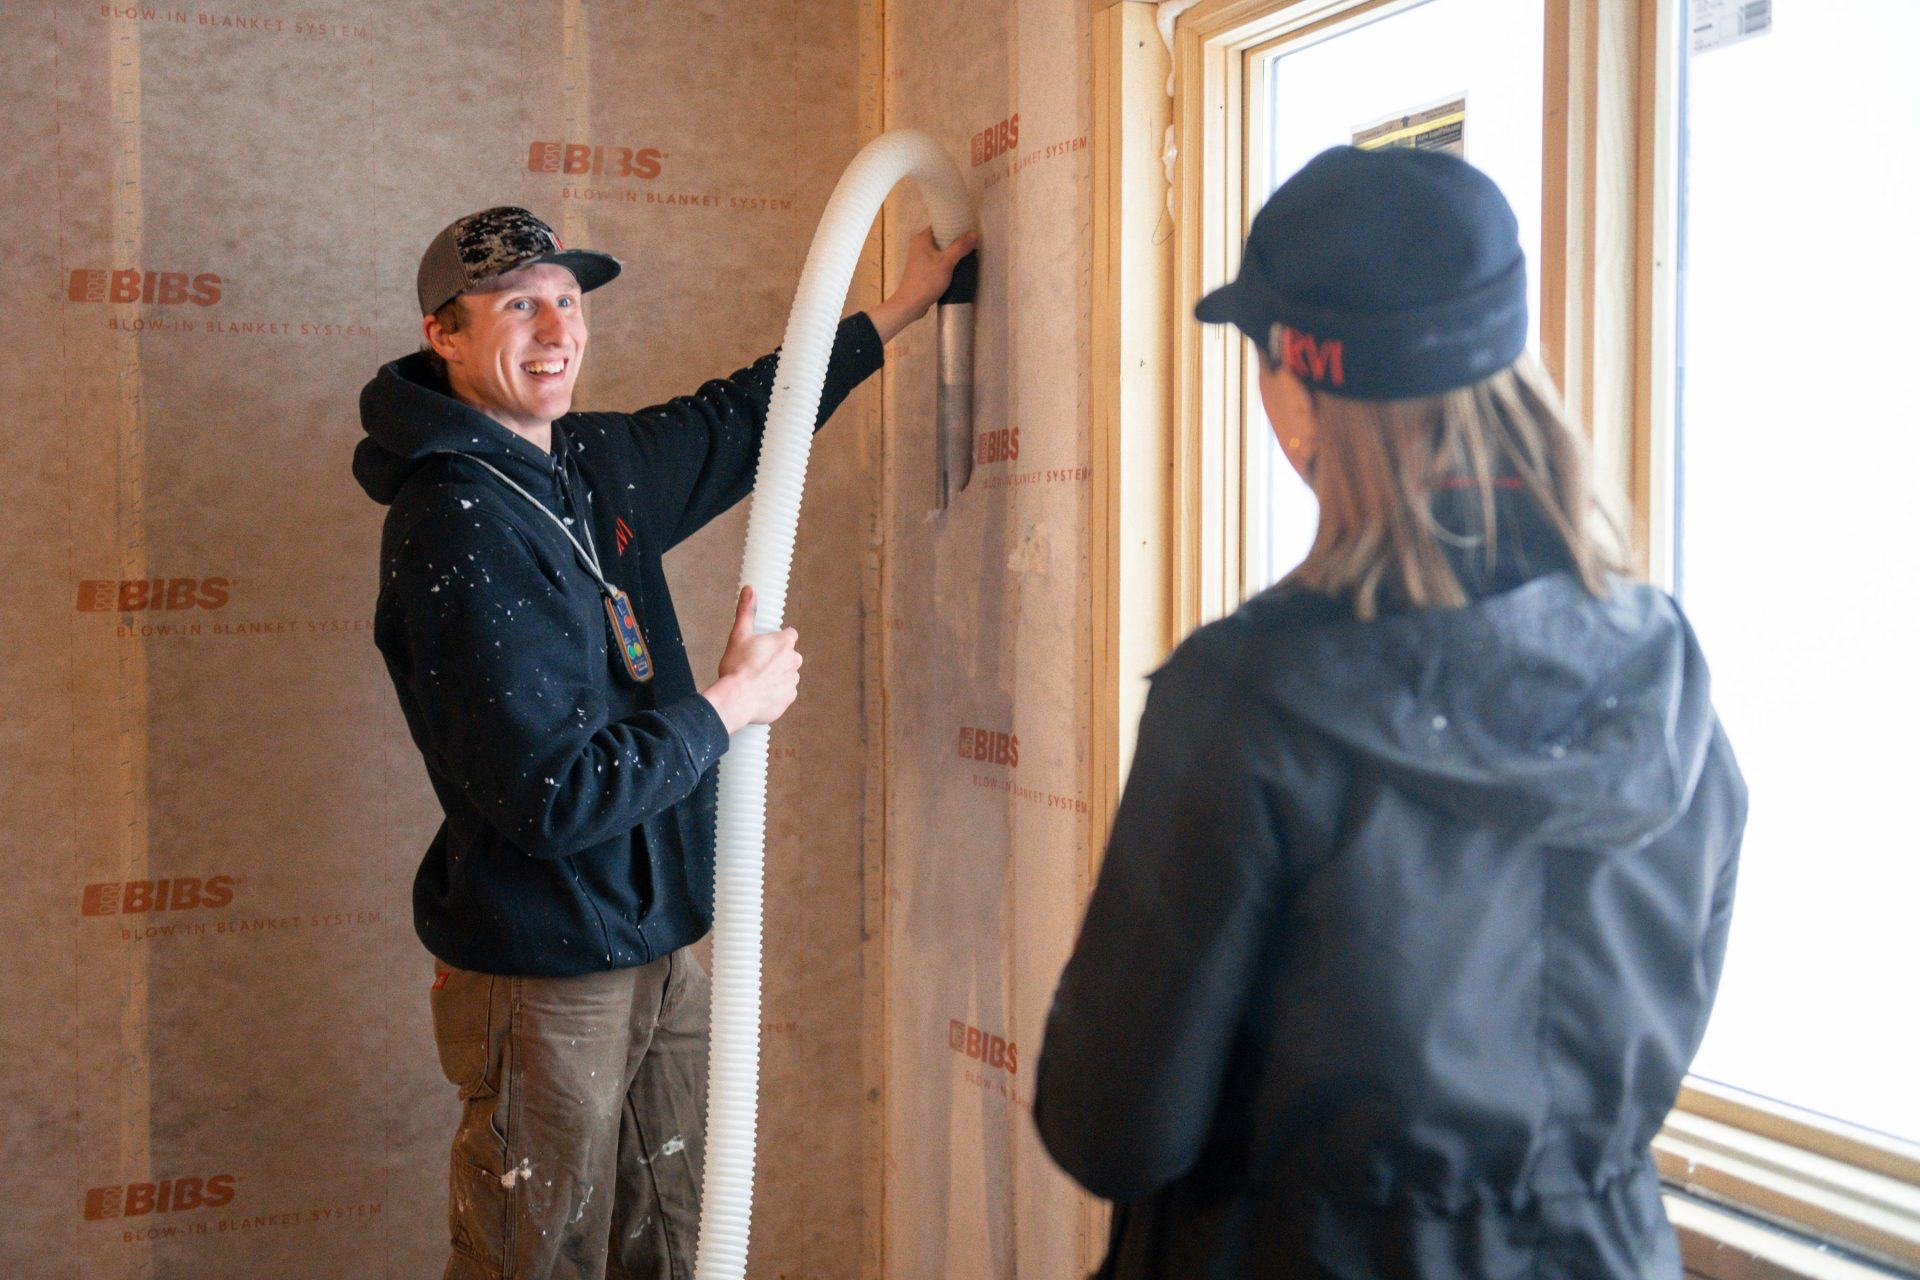 New Home Insulation Experts in Rhinelander, WI, RVI High Performance